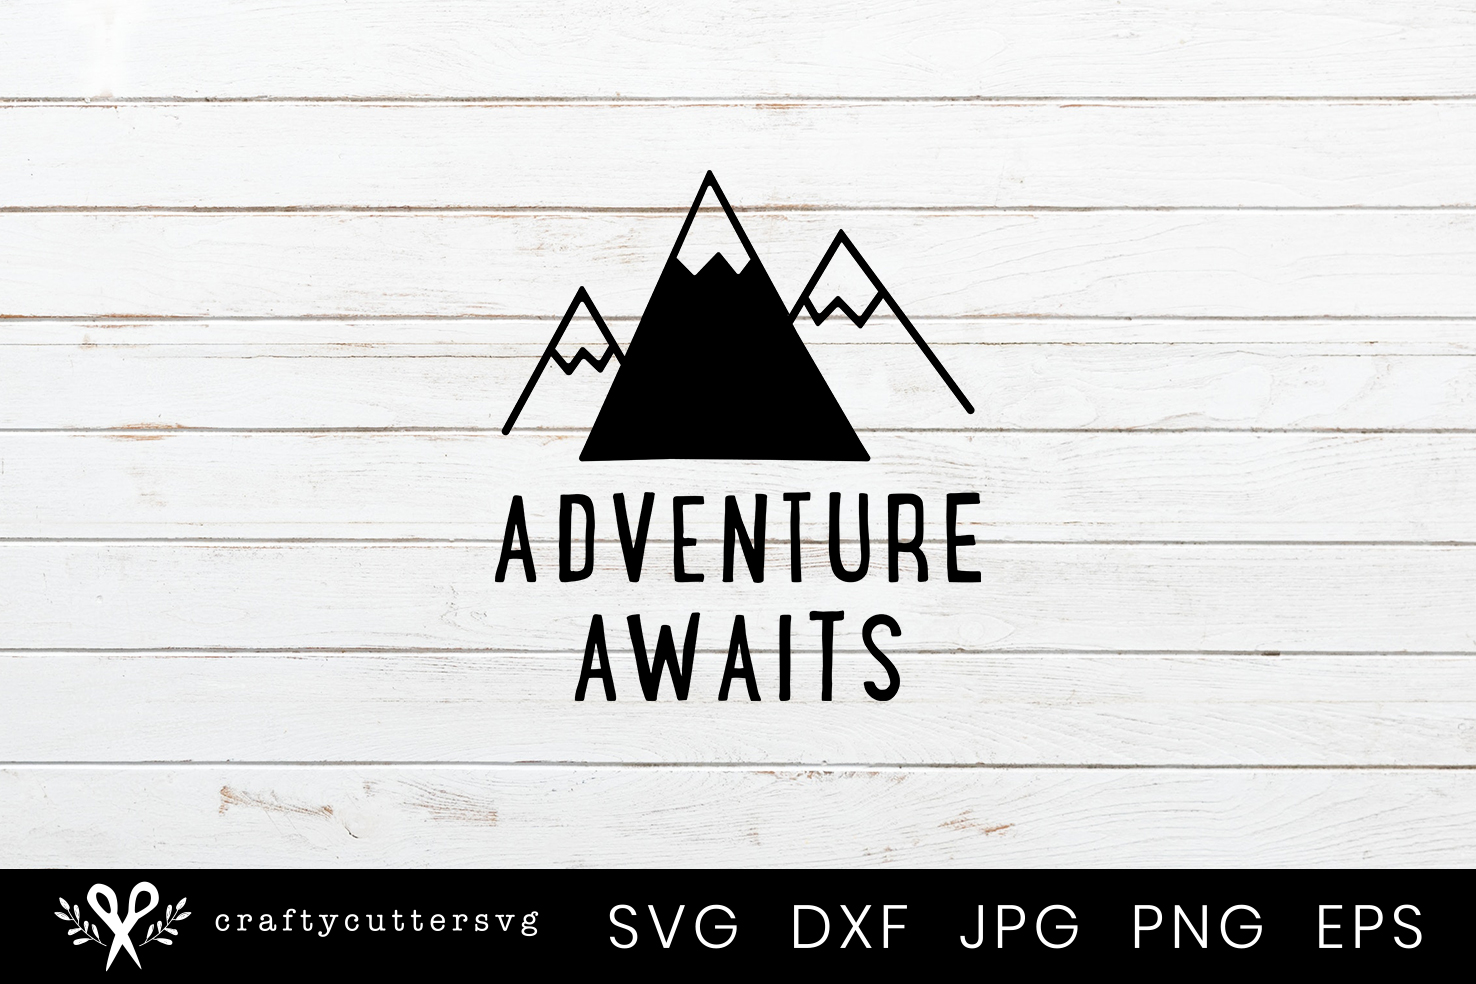 adventure awaits svg #536, Download drawings